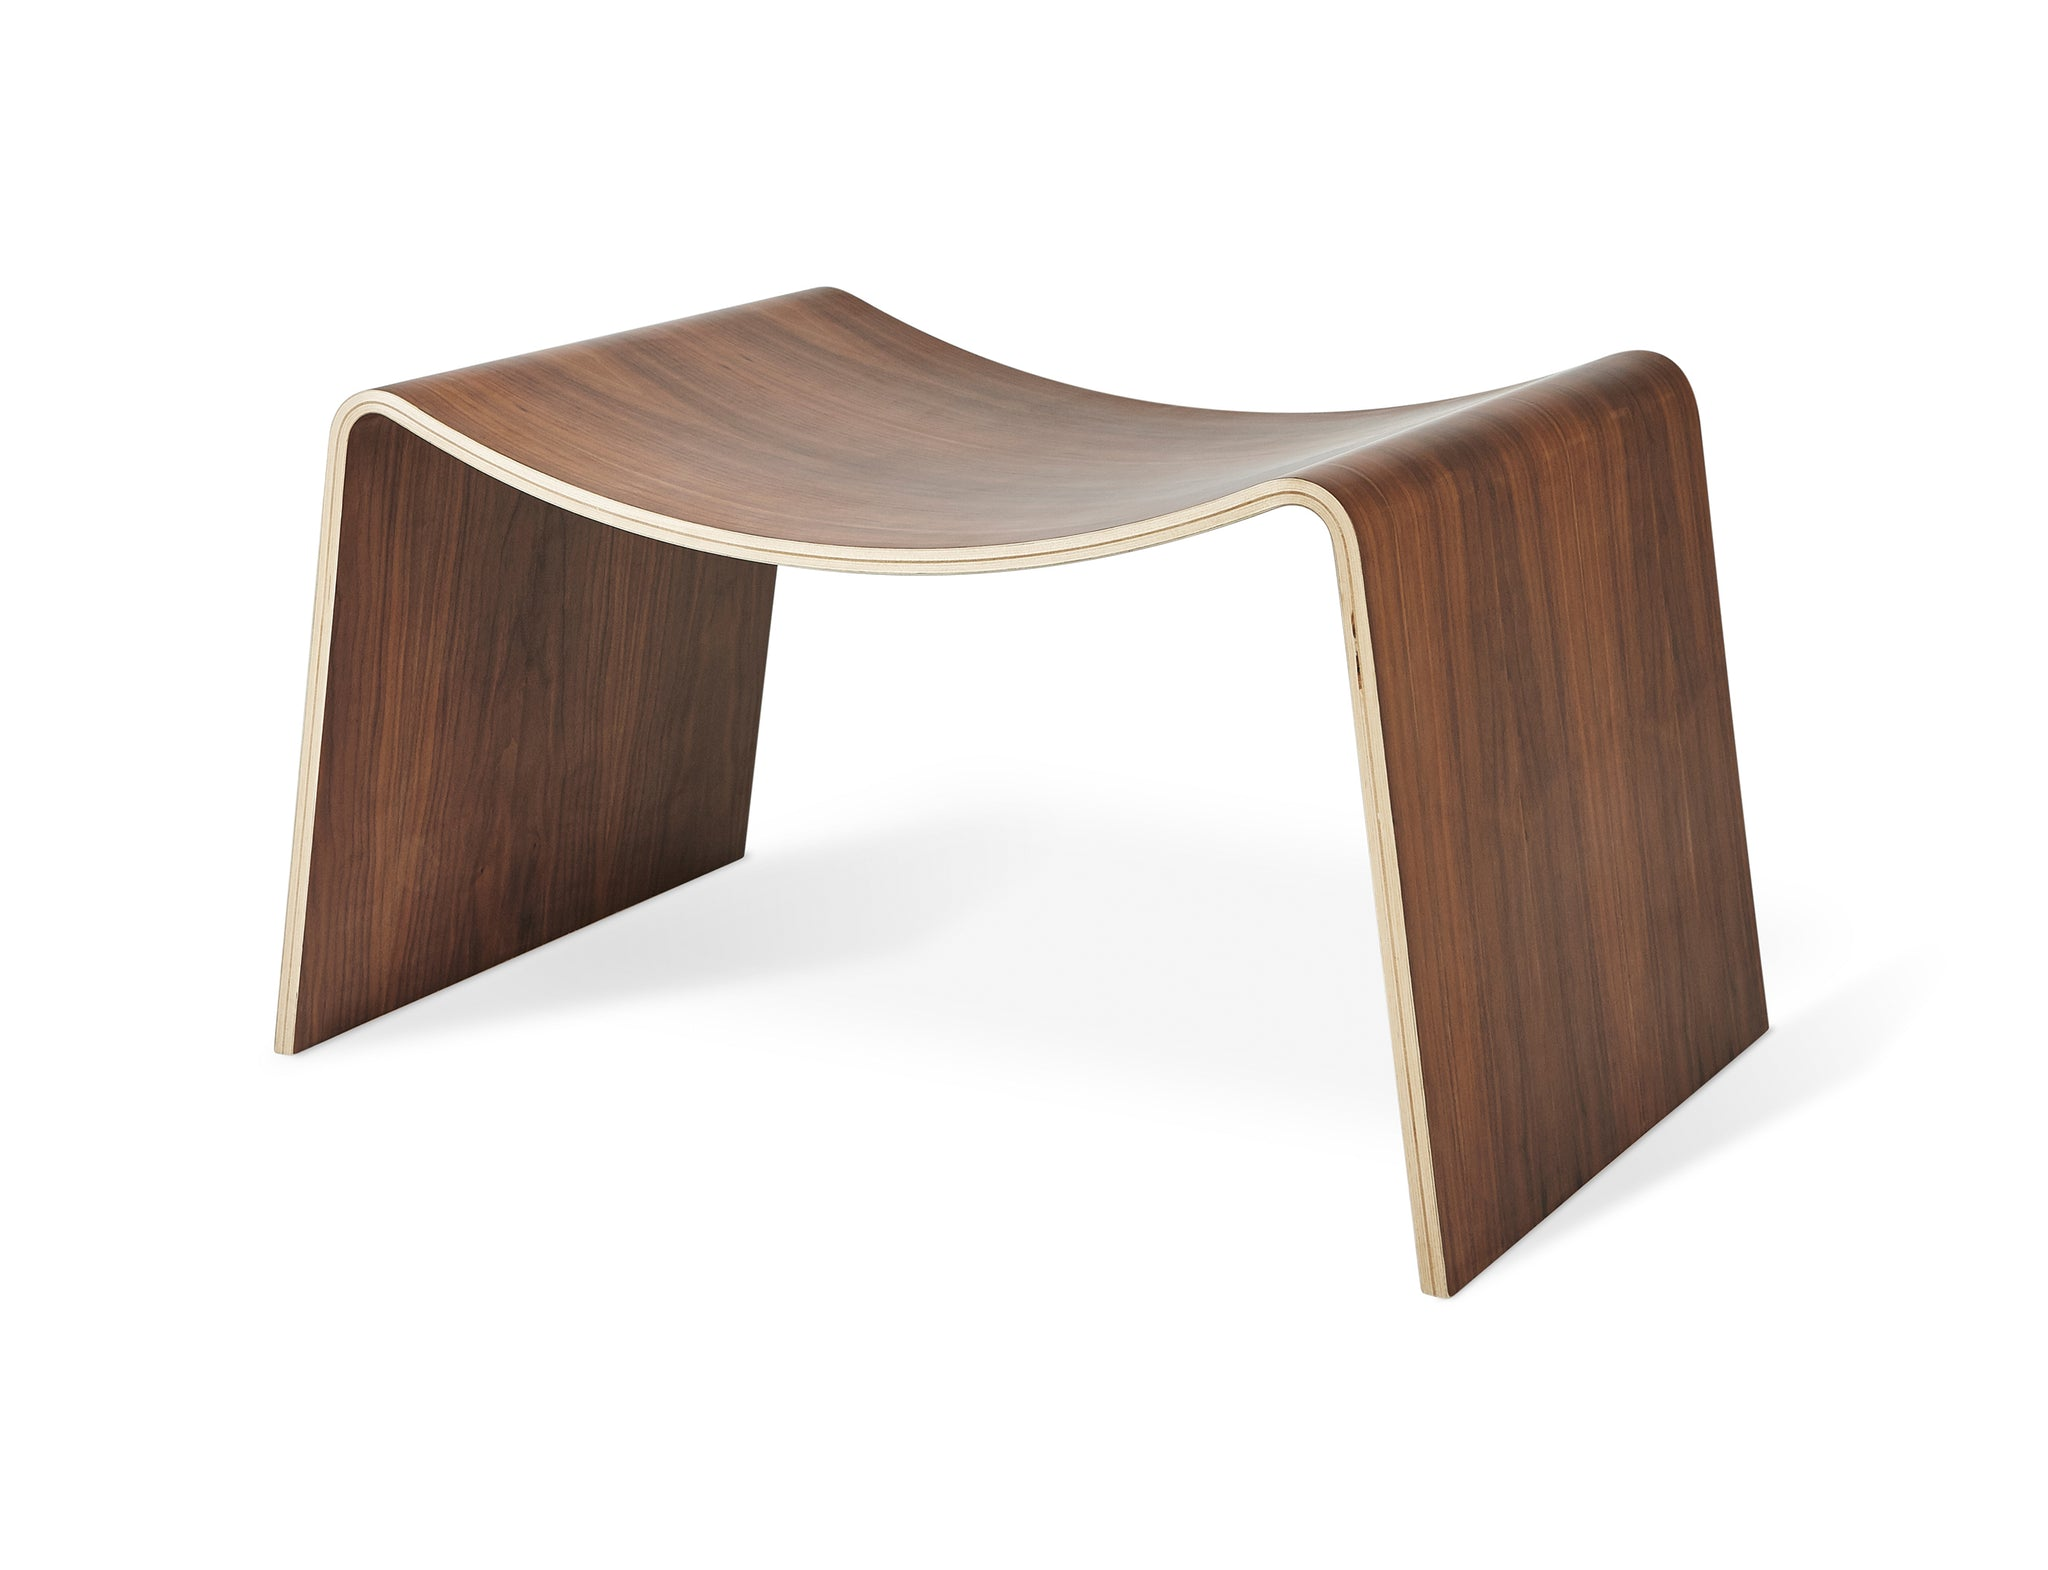 Wave Stool in Walnut design by Gus Modern – BURKE DECOR